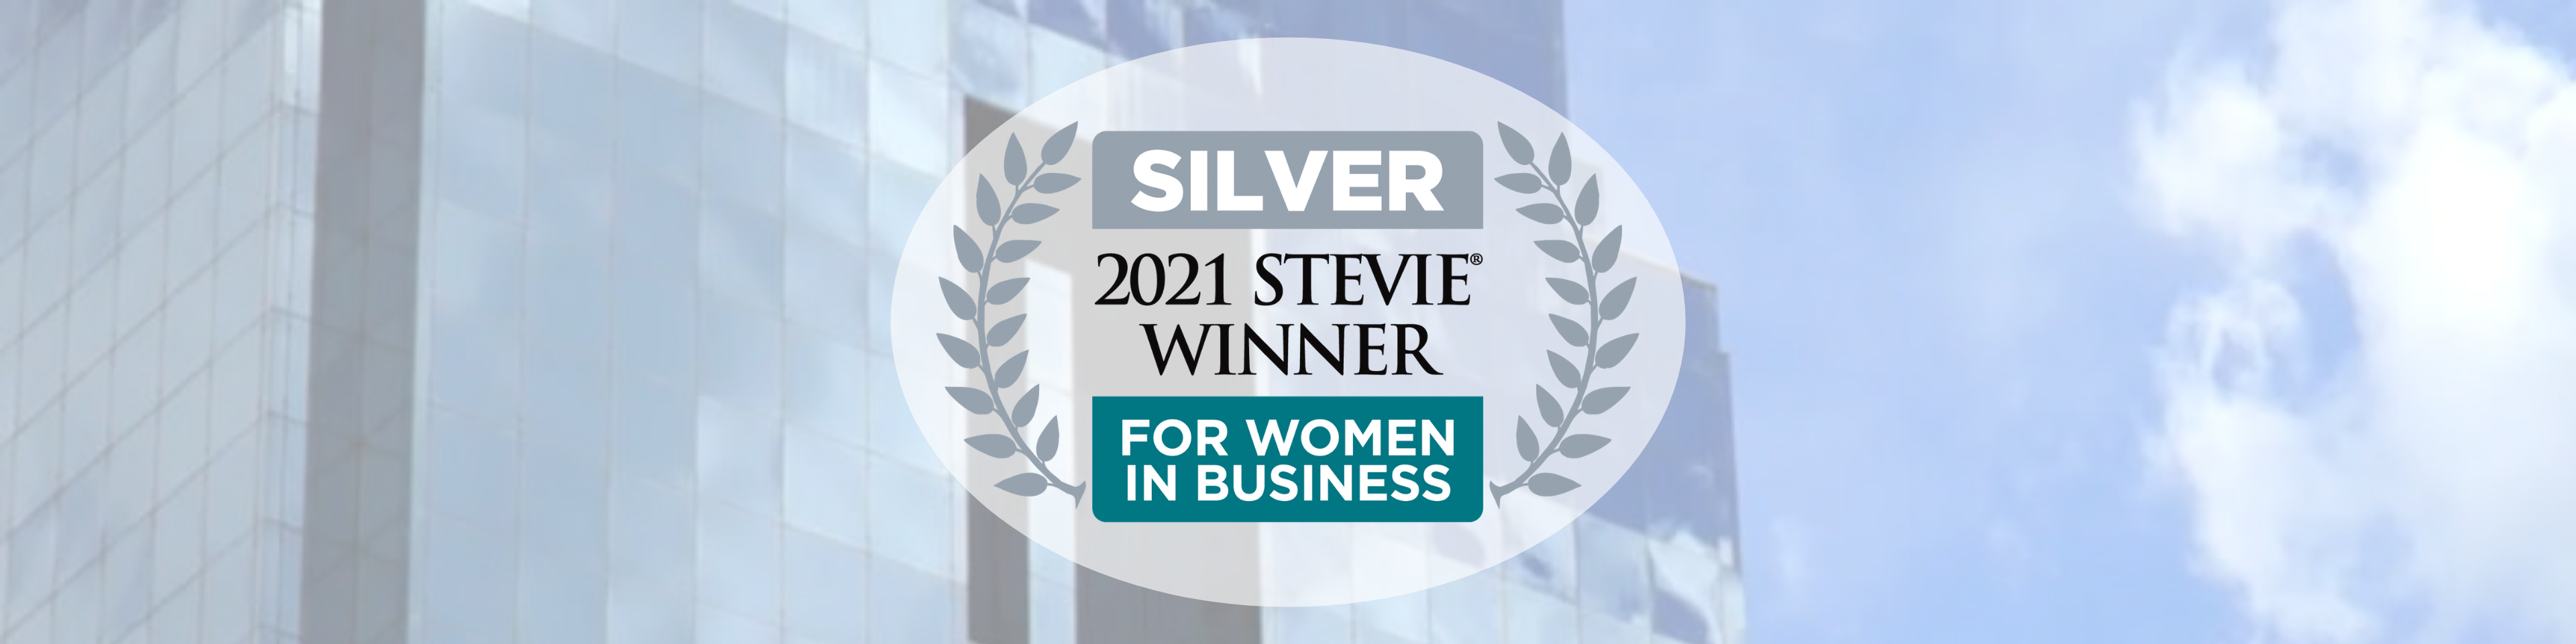 Diana Winfield, Associate Director for Content, Tax & Accounting Asia Pacific recognised with a 2021 Silver Stevie Award